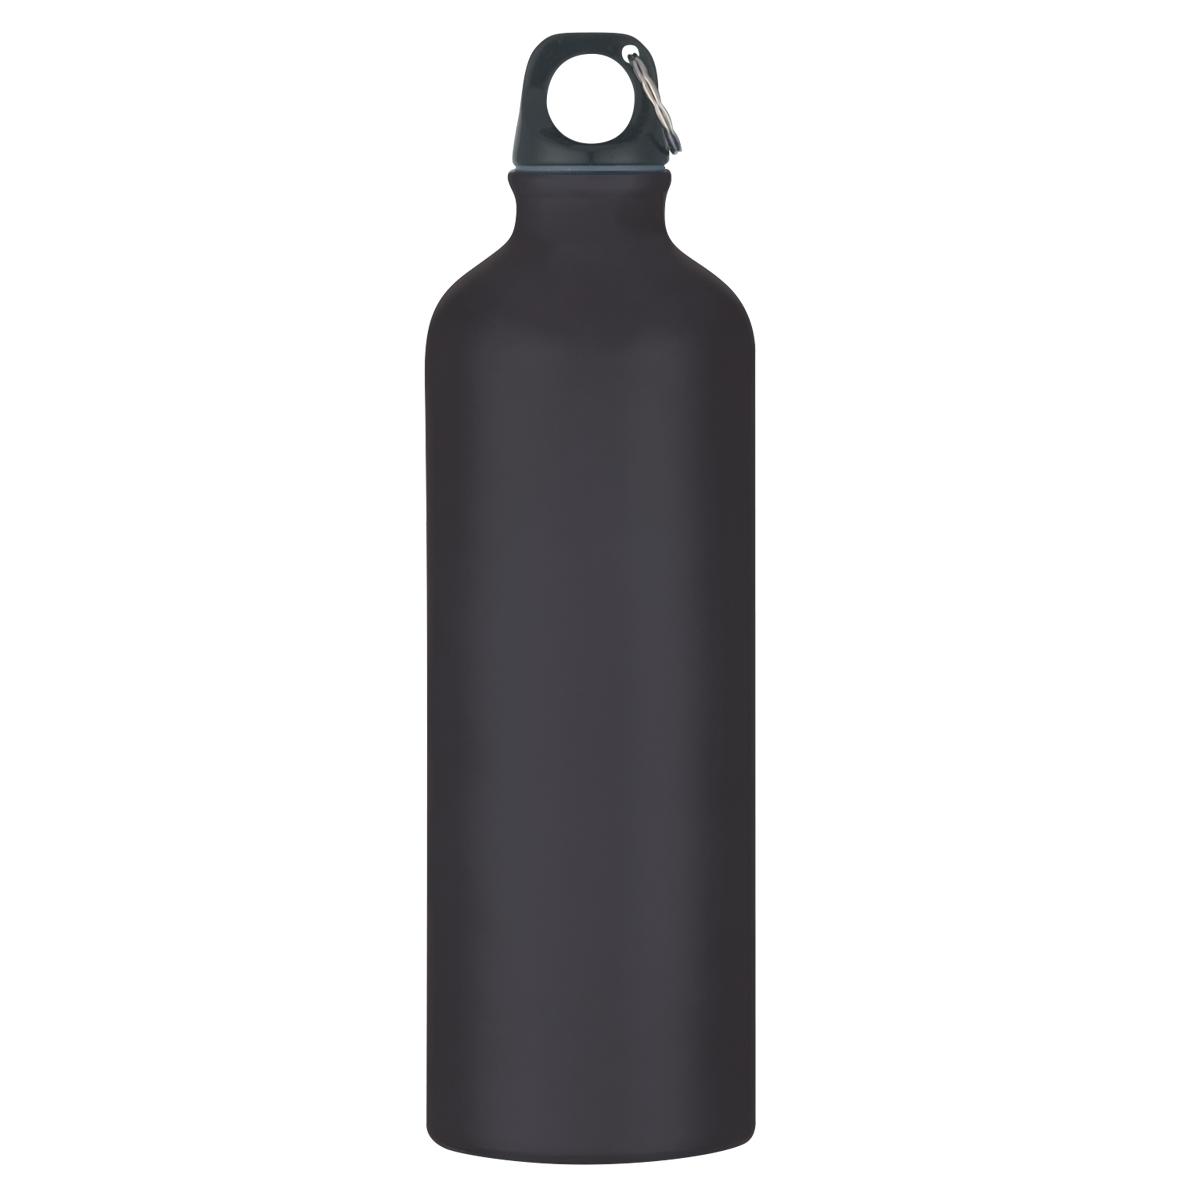 #CM 5702 - 25 Oz. Tundra Aluminum Bike Bottle